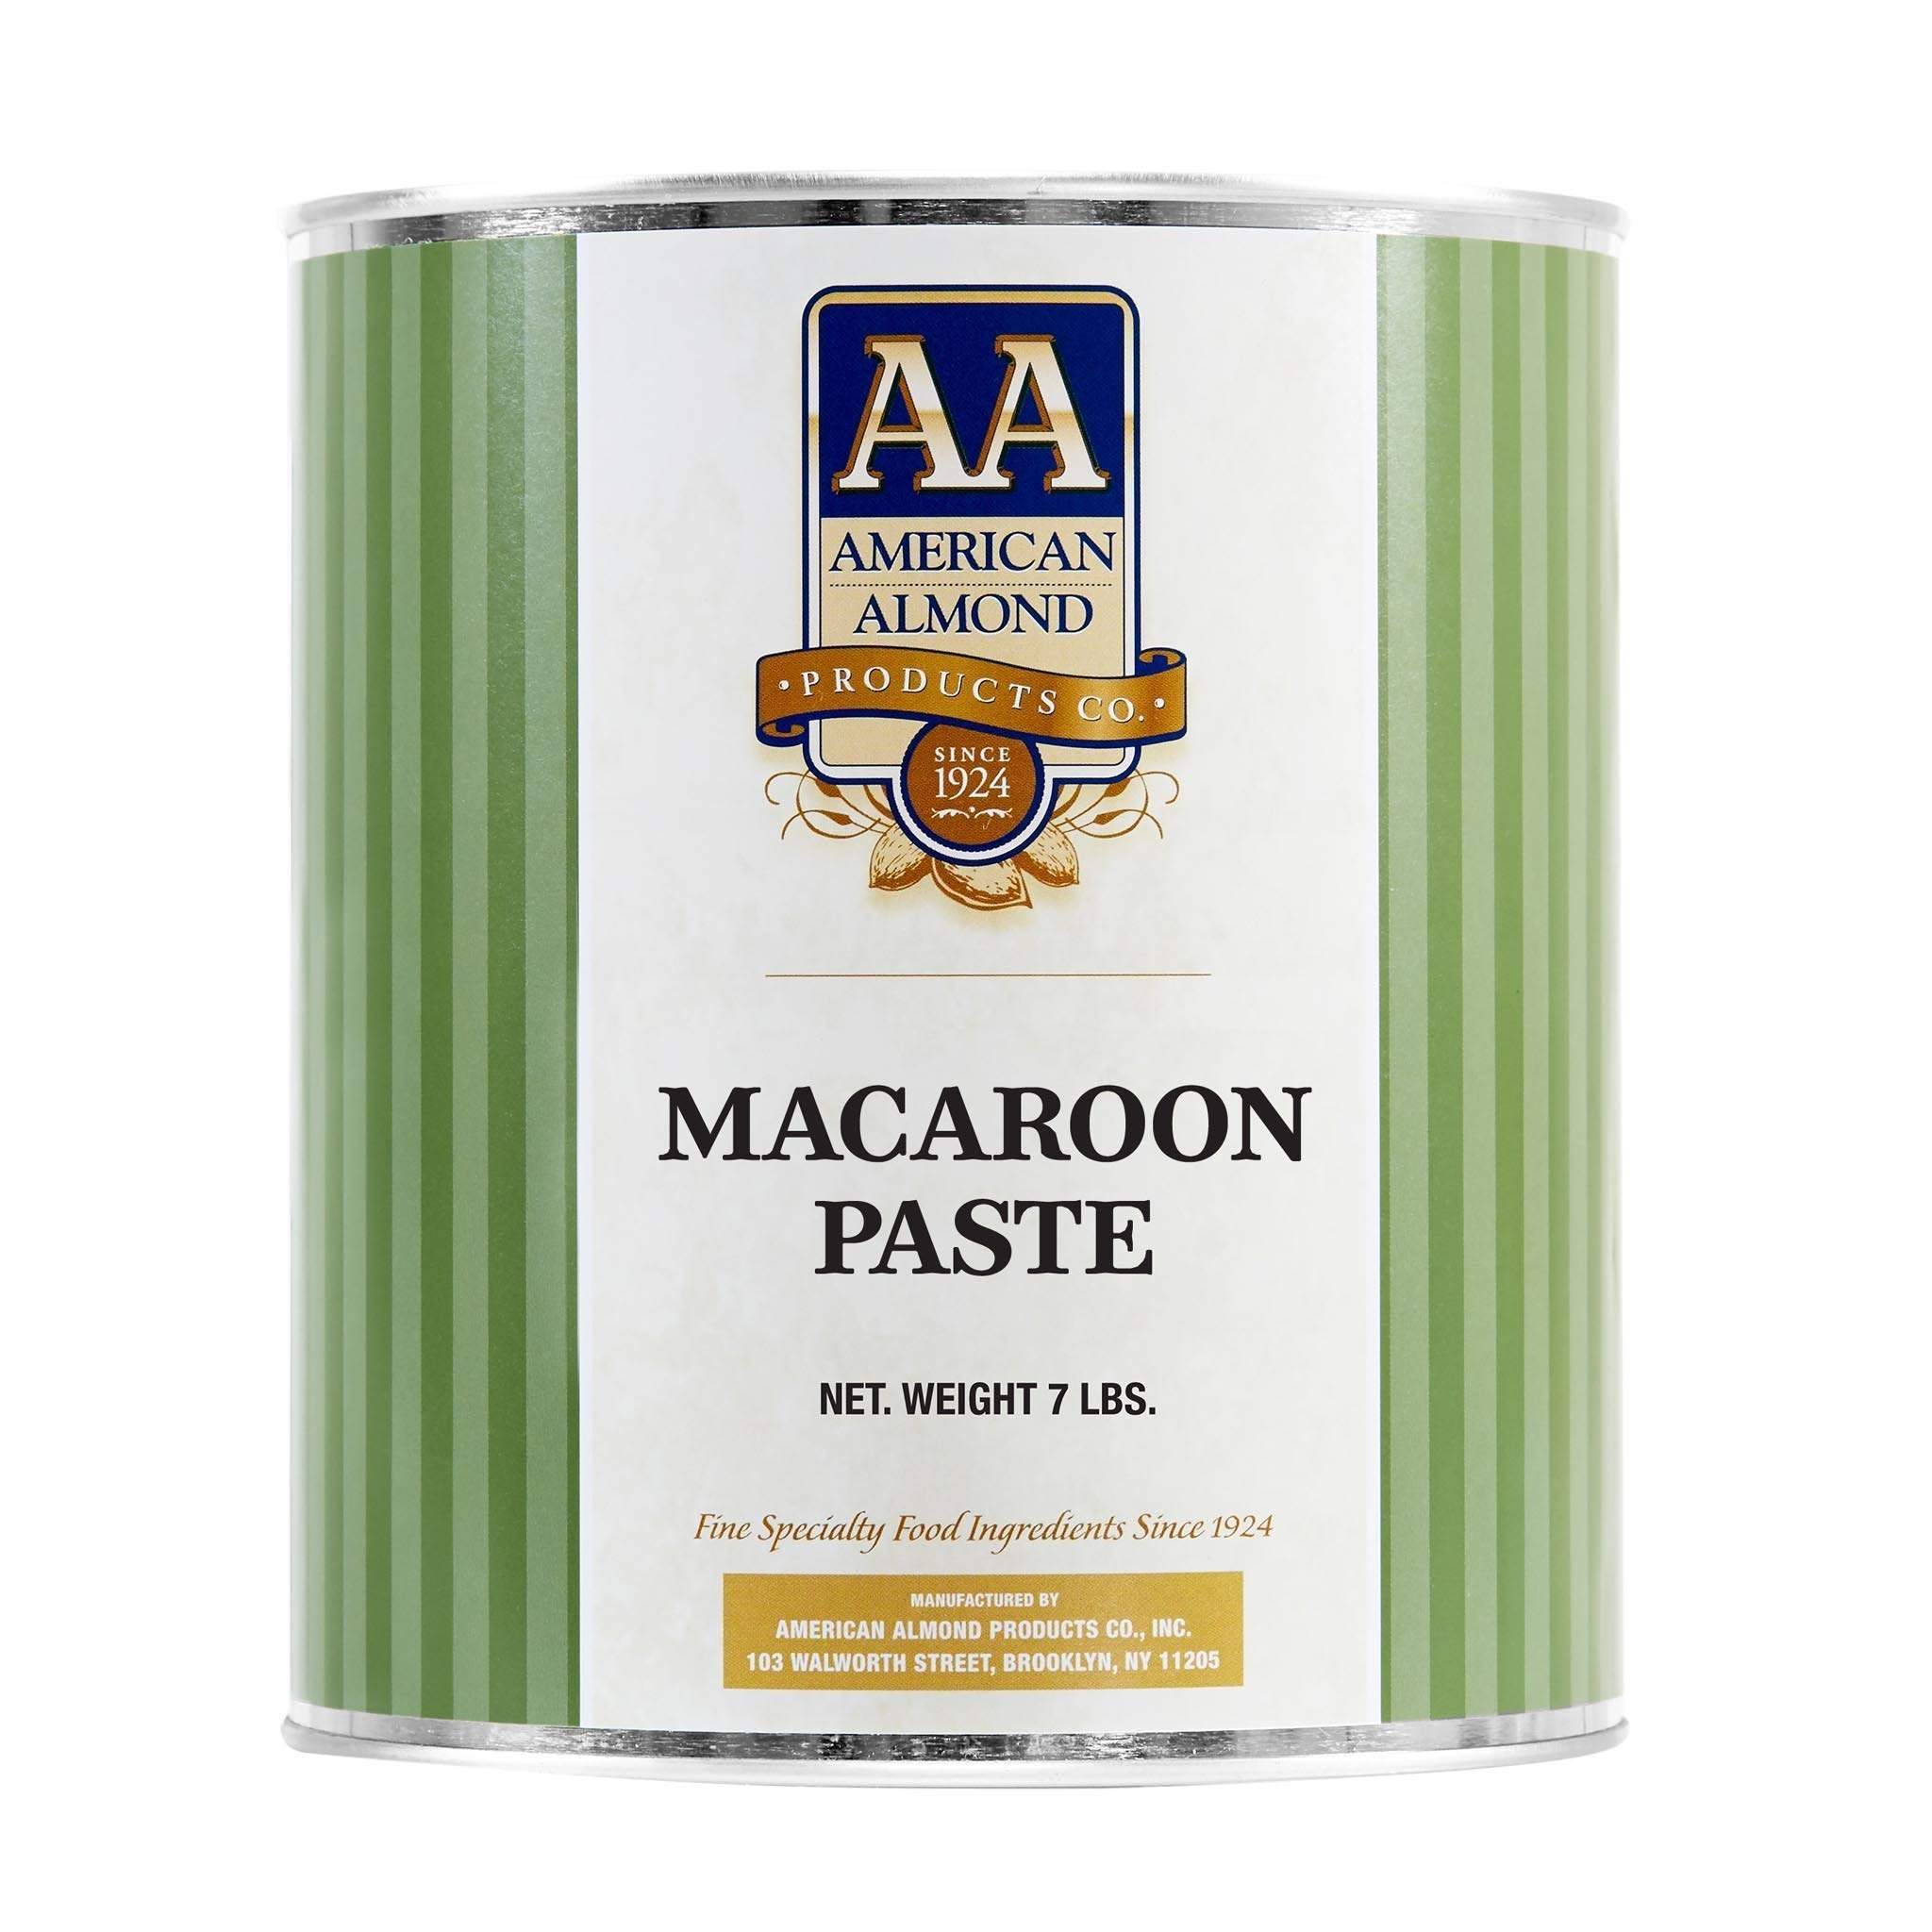 American Almond Almond Paste - Case of Six 7 lb Cans by Generic (Image #1)